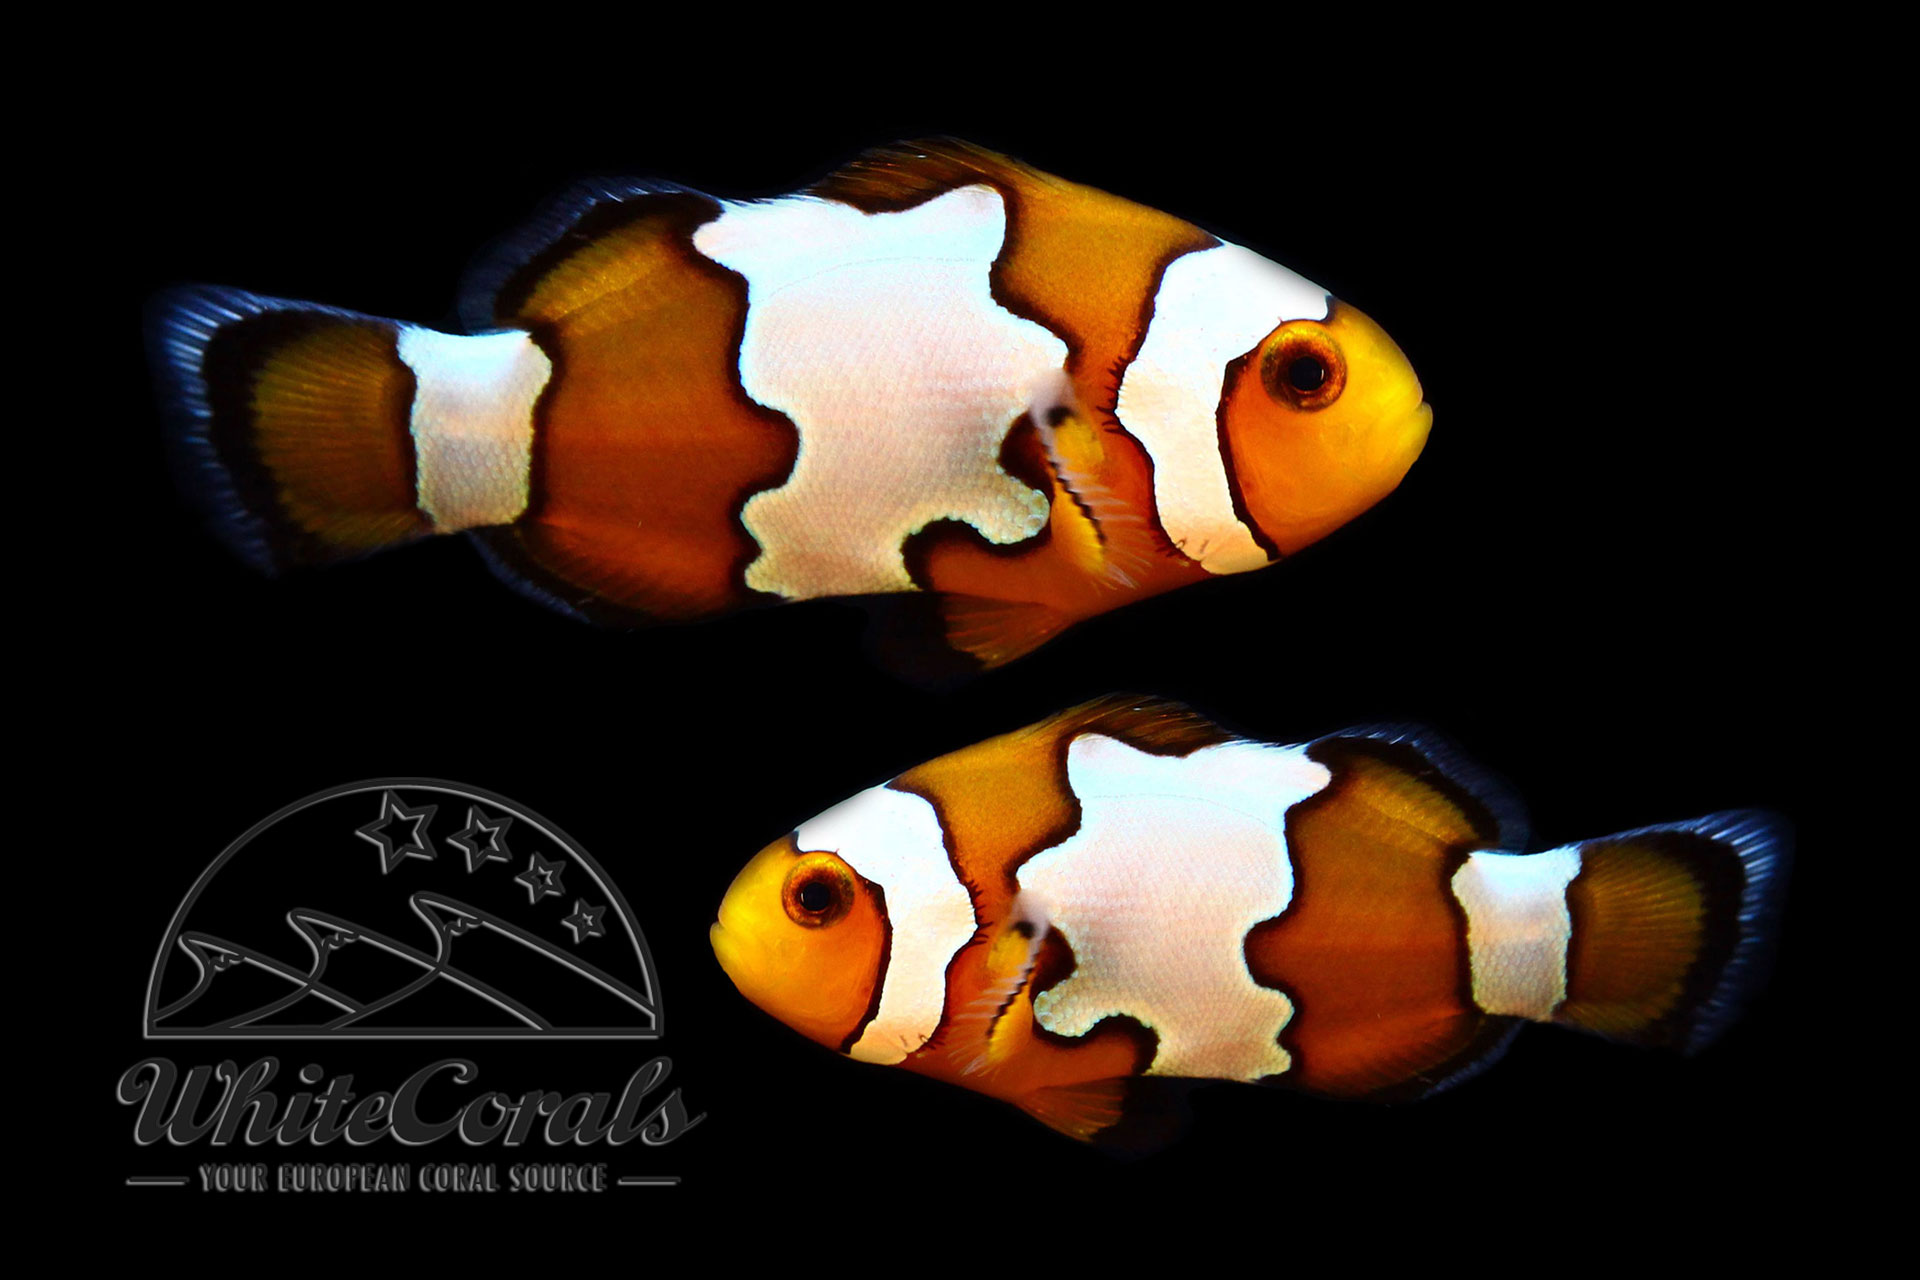 Amphiprion ocellaris - Snowflake Clownfisch (Paar)